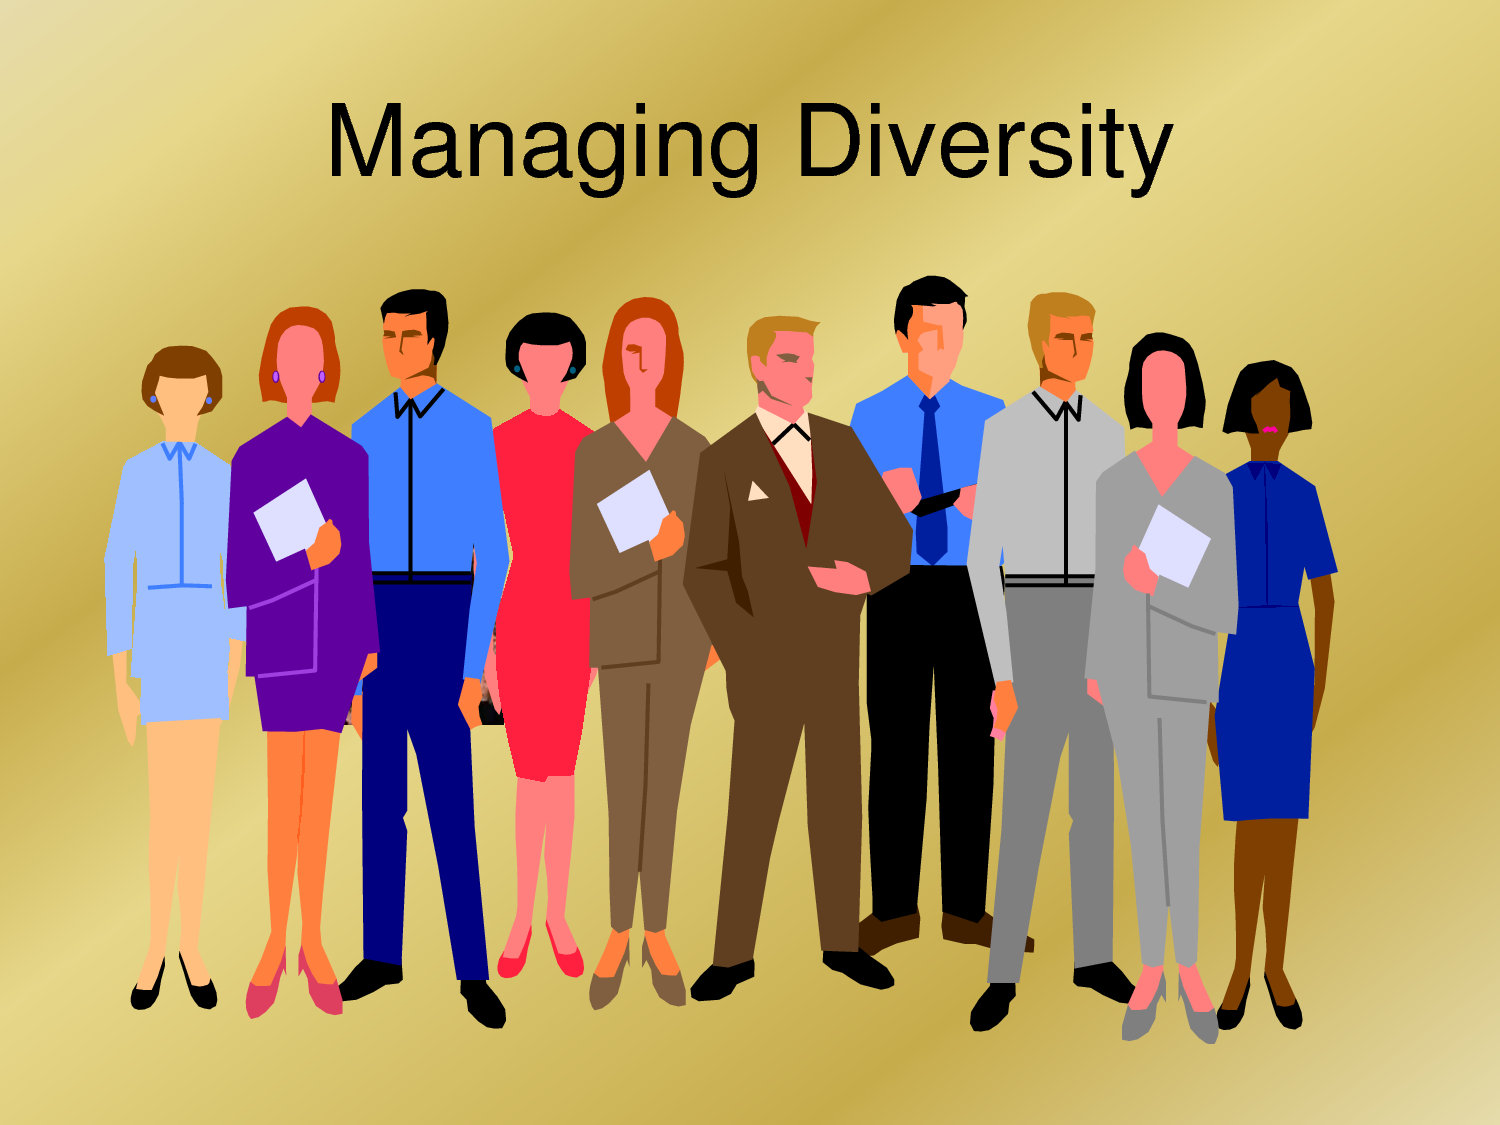 case study on managing cultural diversity management essay Cross-cultural human resource management case company i could contact for help in the case study i cross-cultural human resource management.